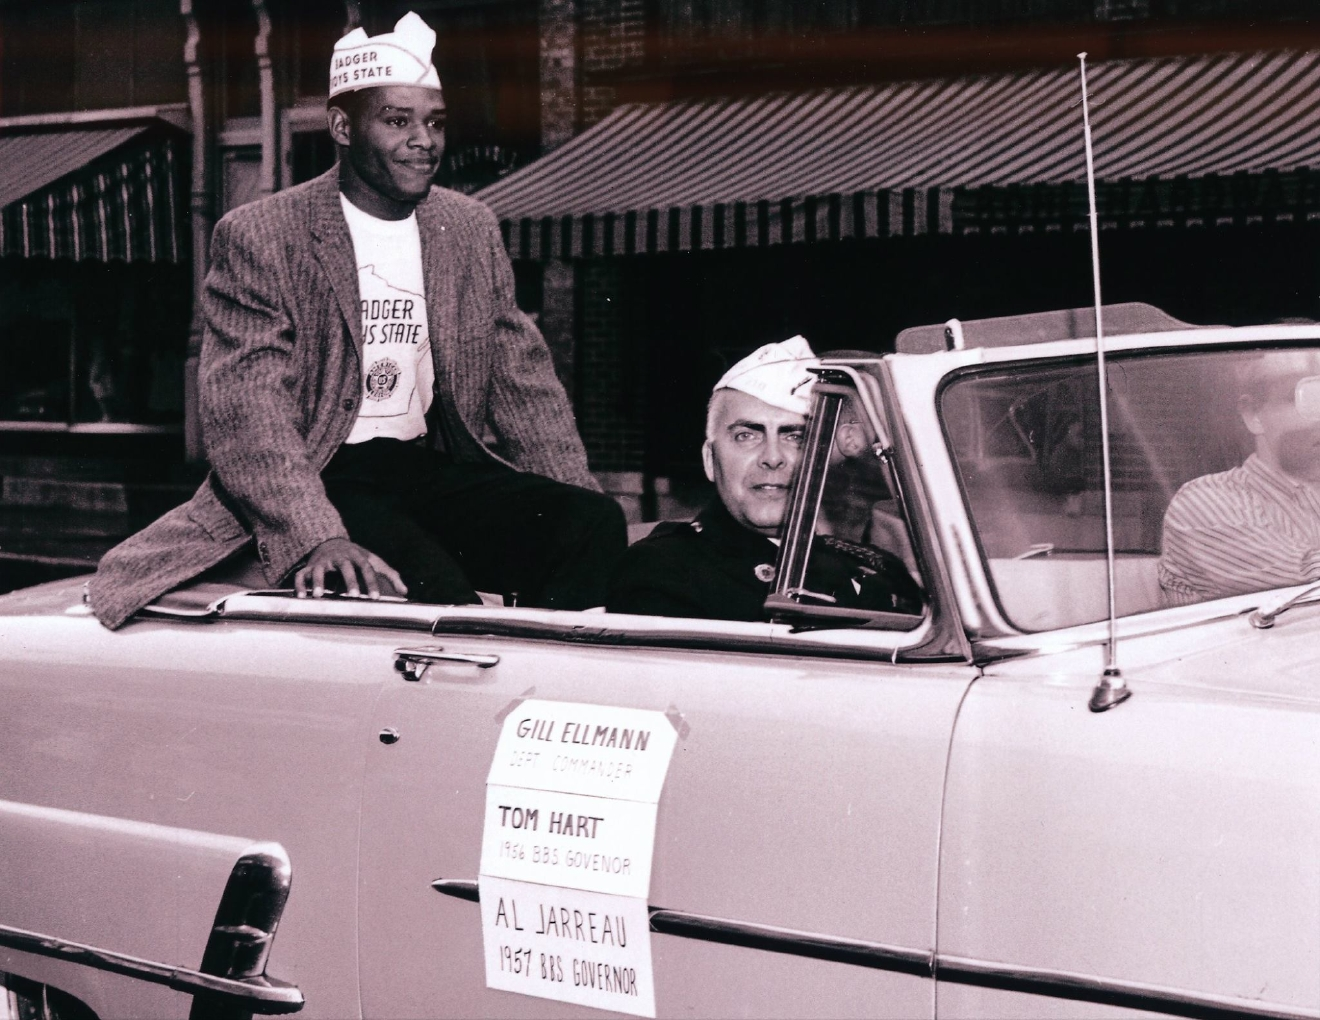 Newly inaugurated Badger Boys State governor Al Jarreau rides down Watson Street in Ripon in 1957. (Photo courtesy Ripon College)